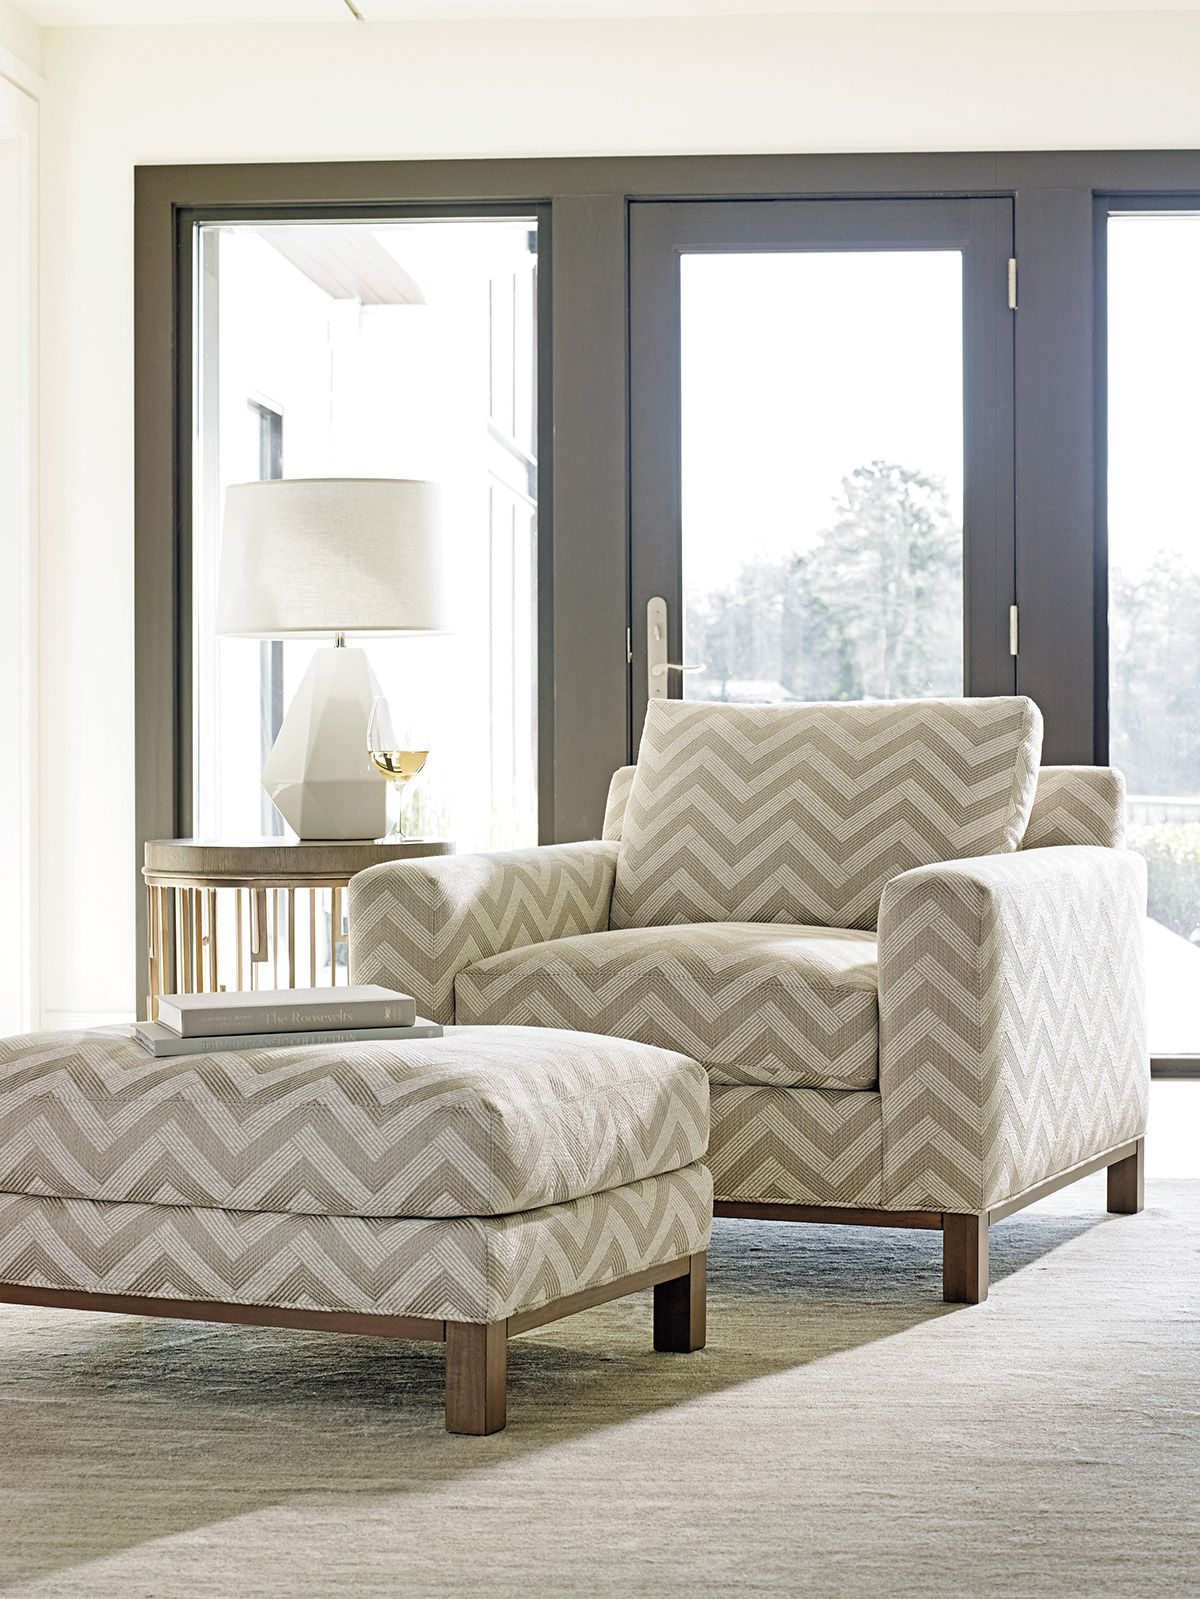 Oversized chair and ottoman with zig-zag geometric pattern ...